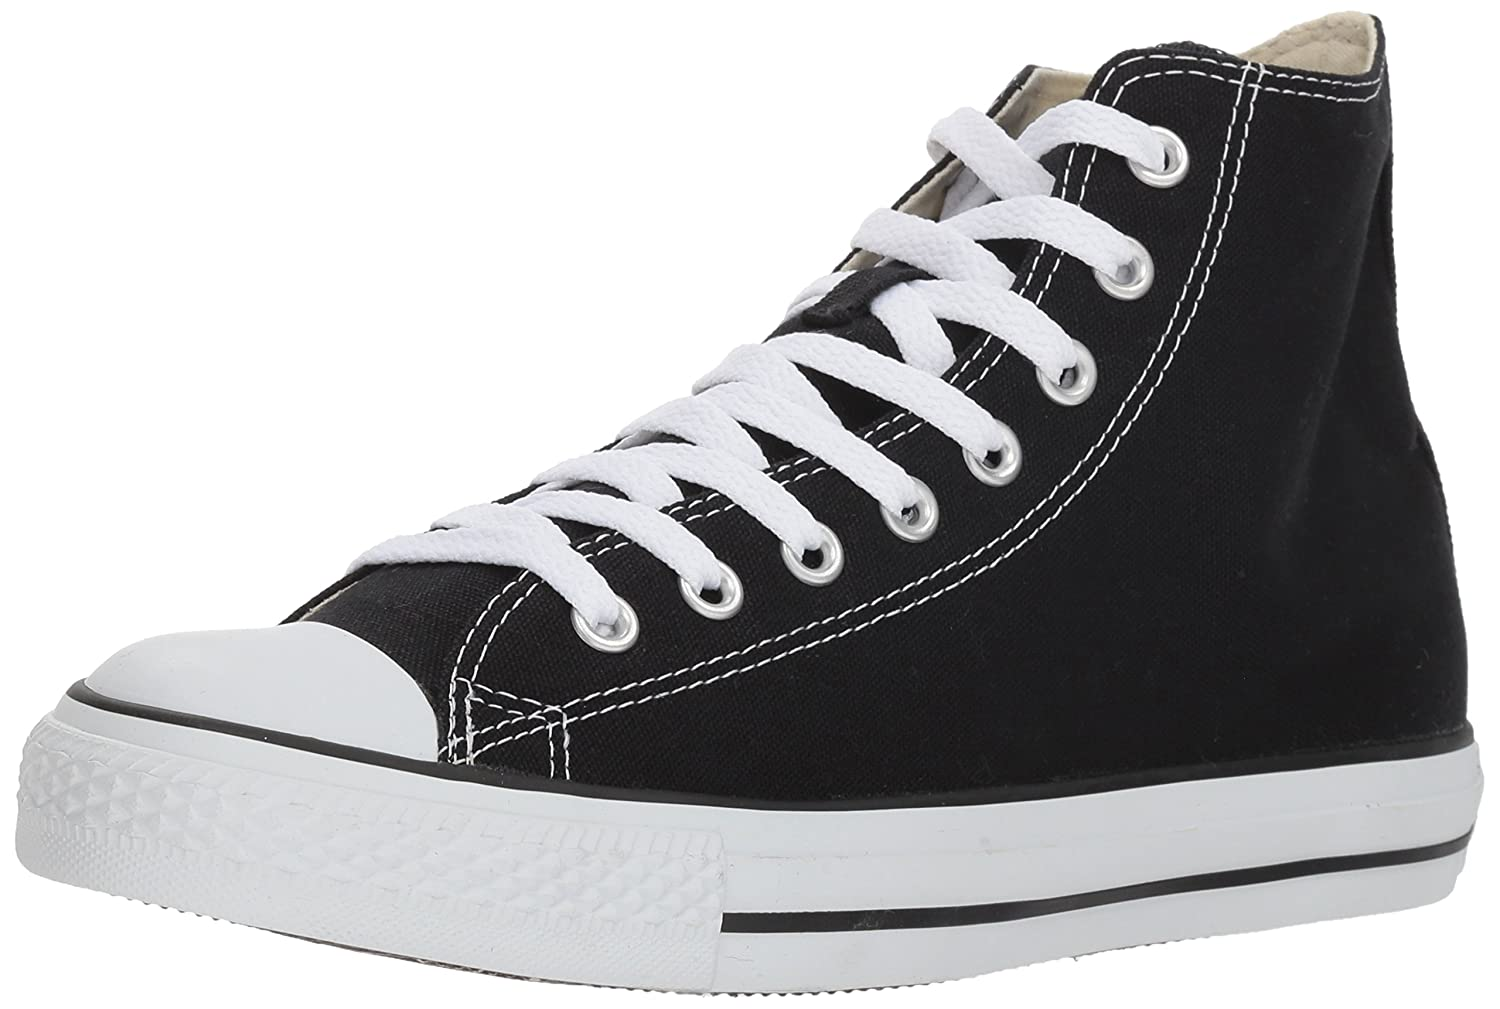 Converse Unisex Chuck Taylor All-Star High-Top Casual Sneakers in Classic Style and Color and Durable Canvas Uppers B000LFAQDA 4.5 D(M) US Mens/6.5 B(M) US Womens|Black